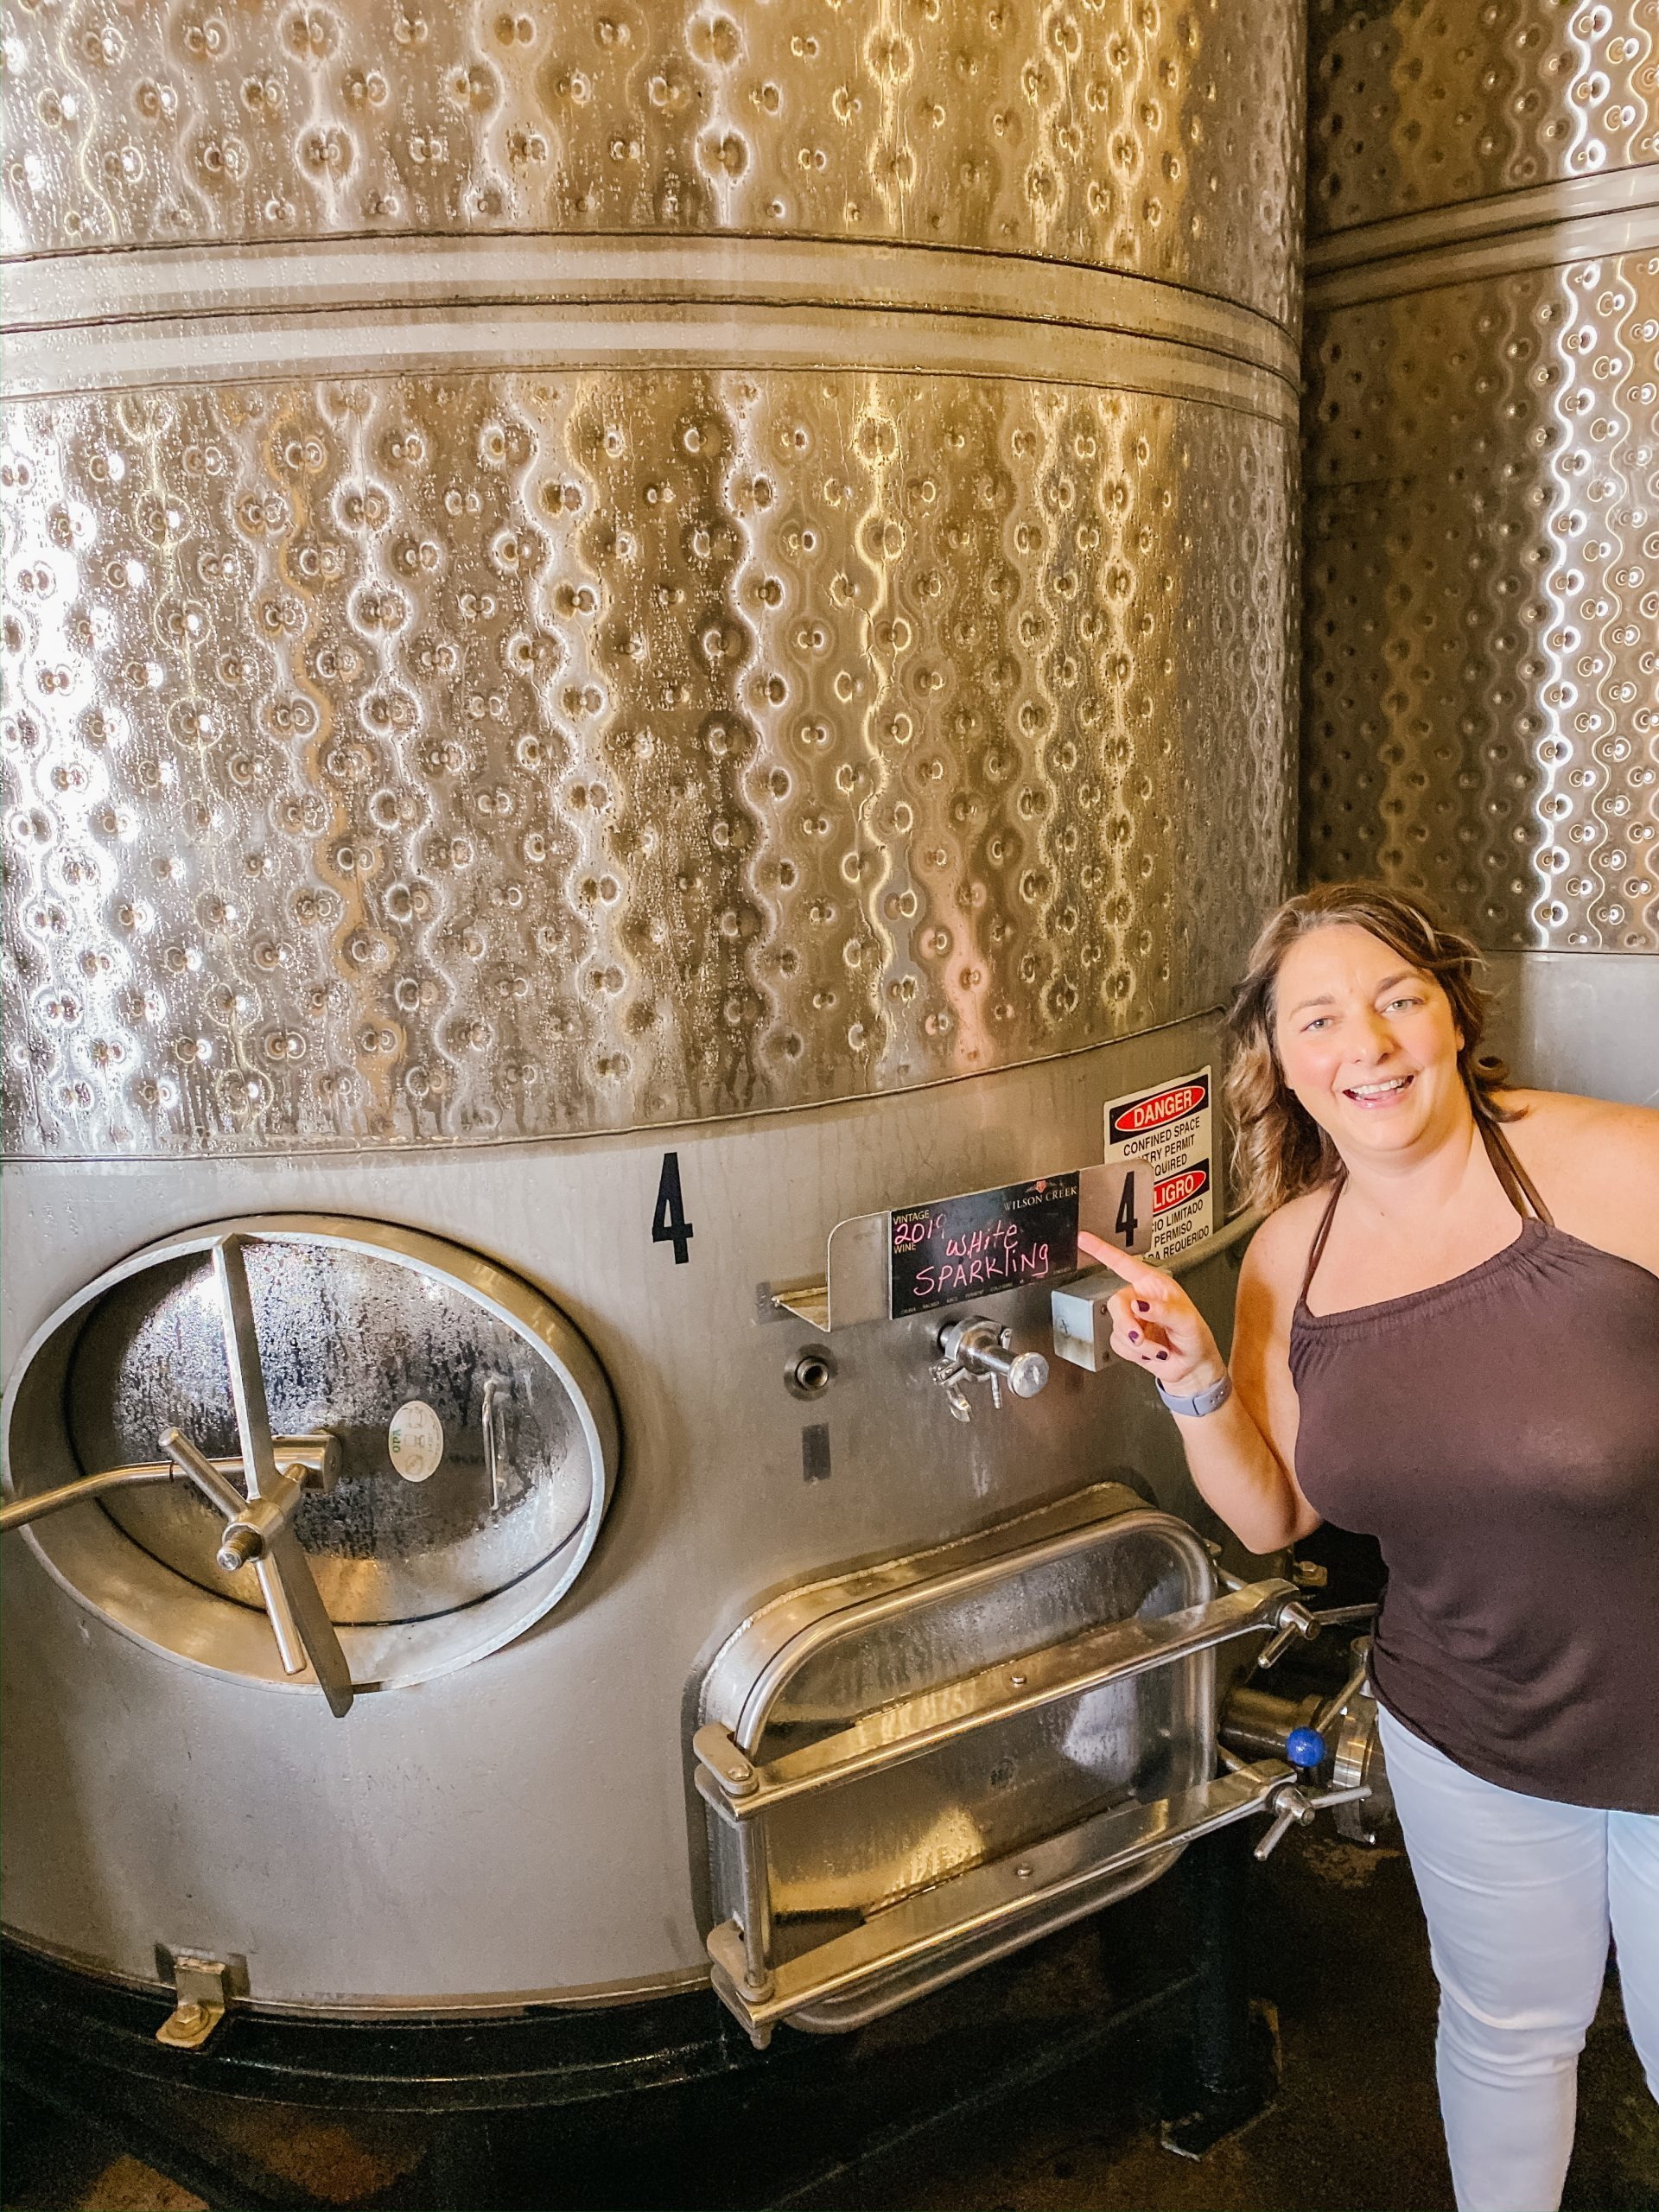 The Bubbly Side of Life with the wine tanks at the Wilson Creek Winery